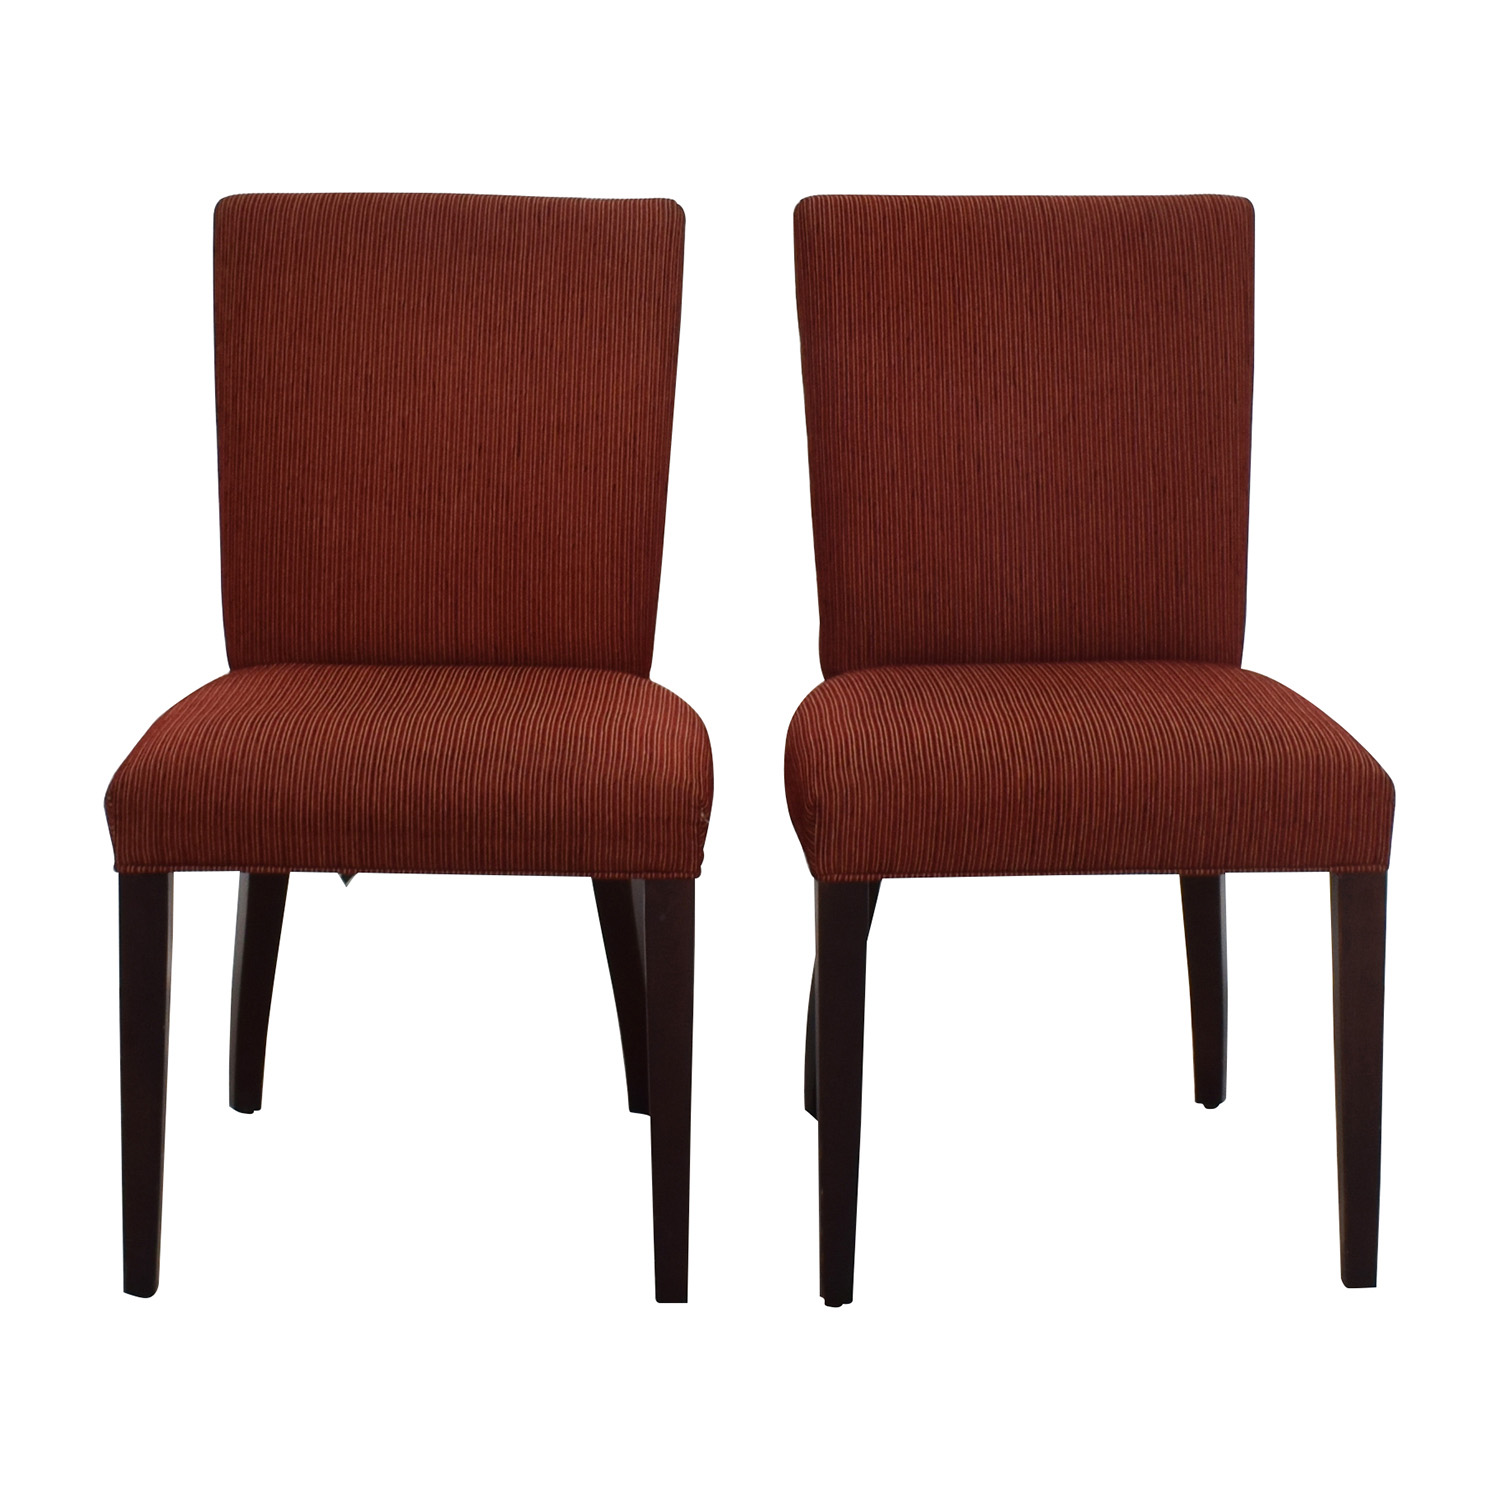 Room & Board Room & Board Anssel Rust Dining Room Chairs nyc